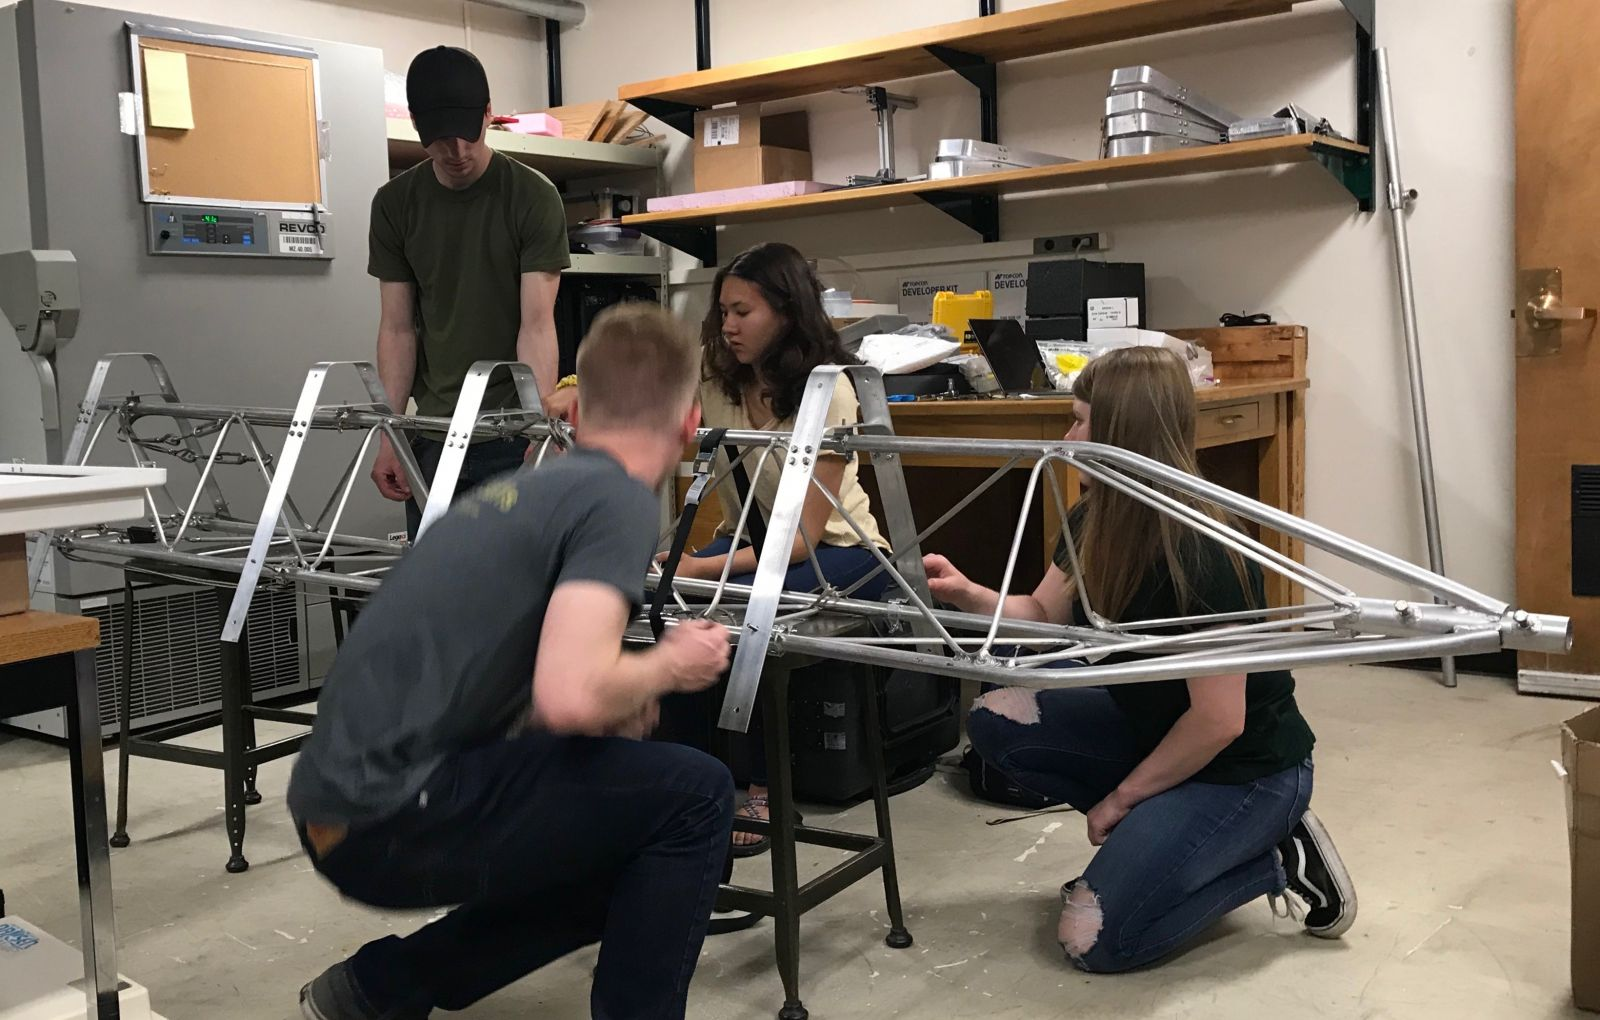 Team JANE assembling the AMIGOS tower with mounts to test for the solar panel attachment. From left to right: Jack Soltys, Ryan Weatherbee Skylar Edwards, and Emma Tomlinson.